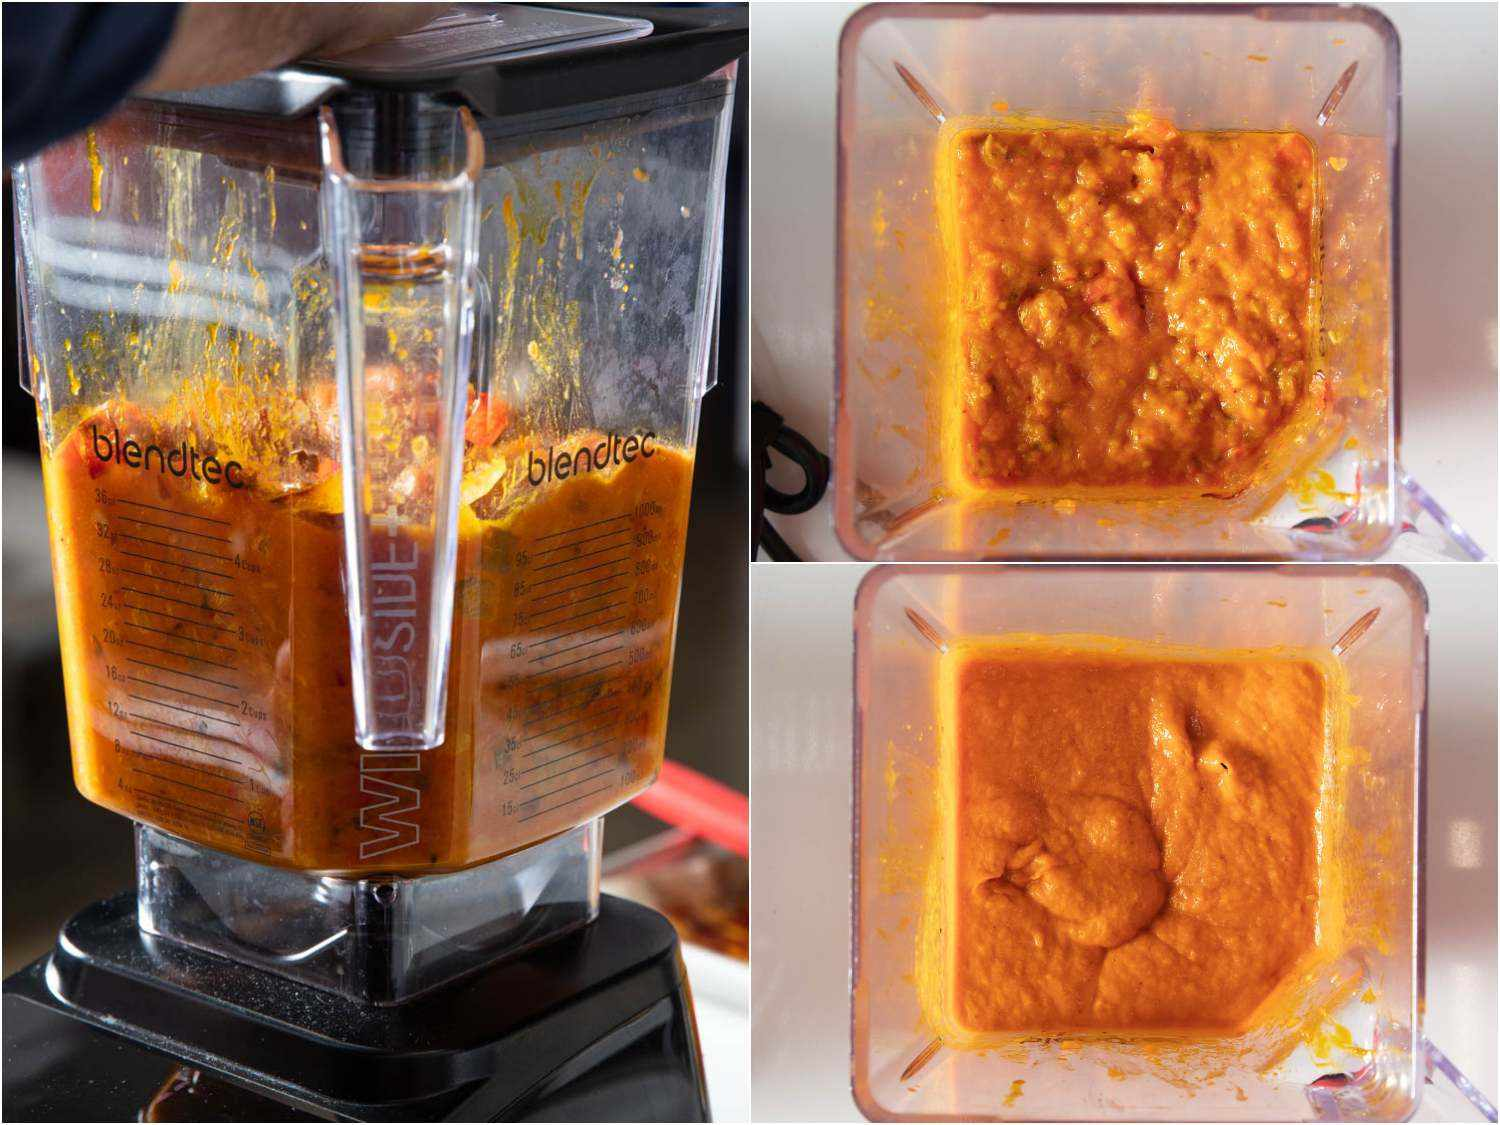 Obe ata can be blended smooth or left more chunky; here it is shown in a photo collage inside a blender jar at different consistency levels (very smooth and semi-chunky)